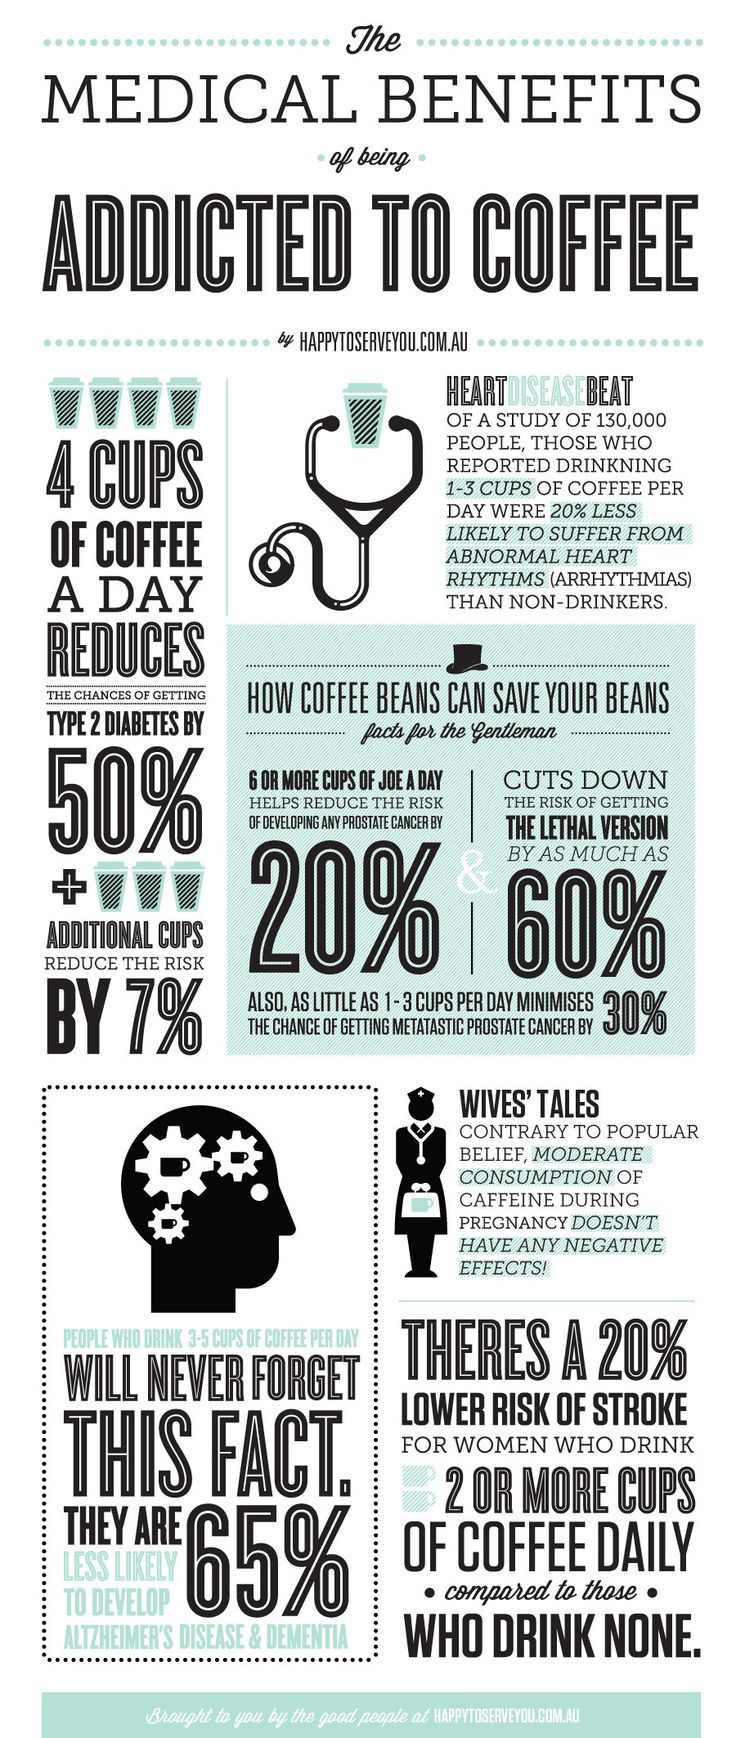 Oh, good.  More justification for my caffeine addiction!